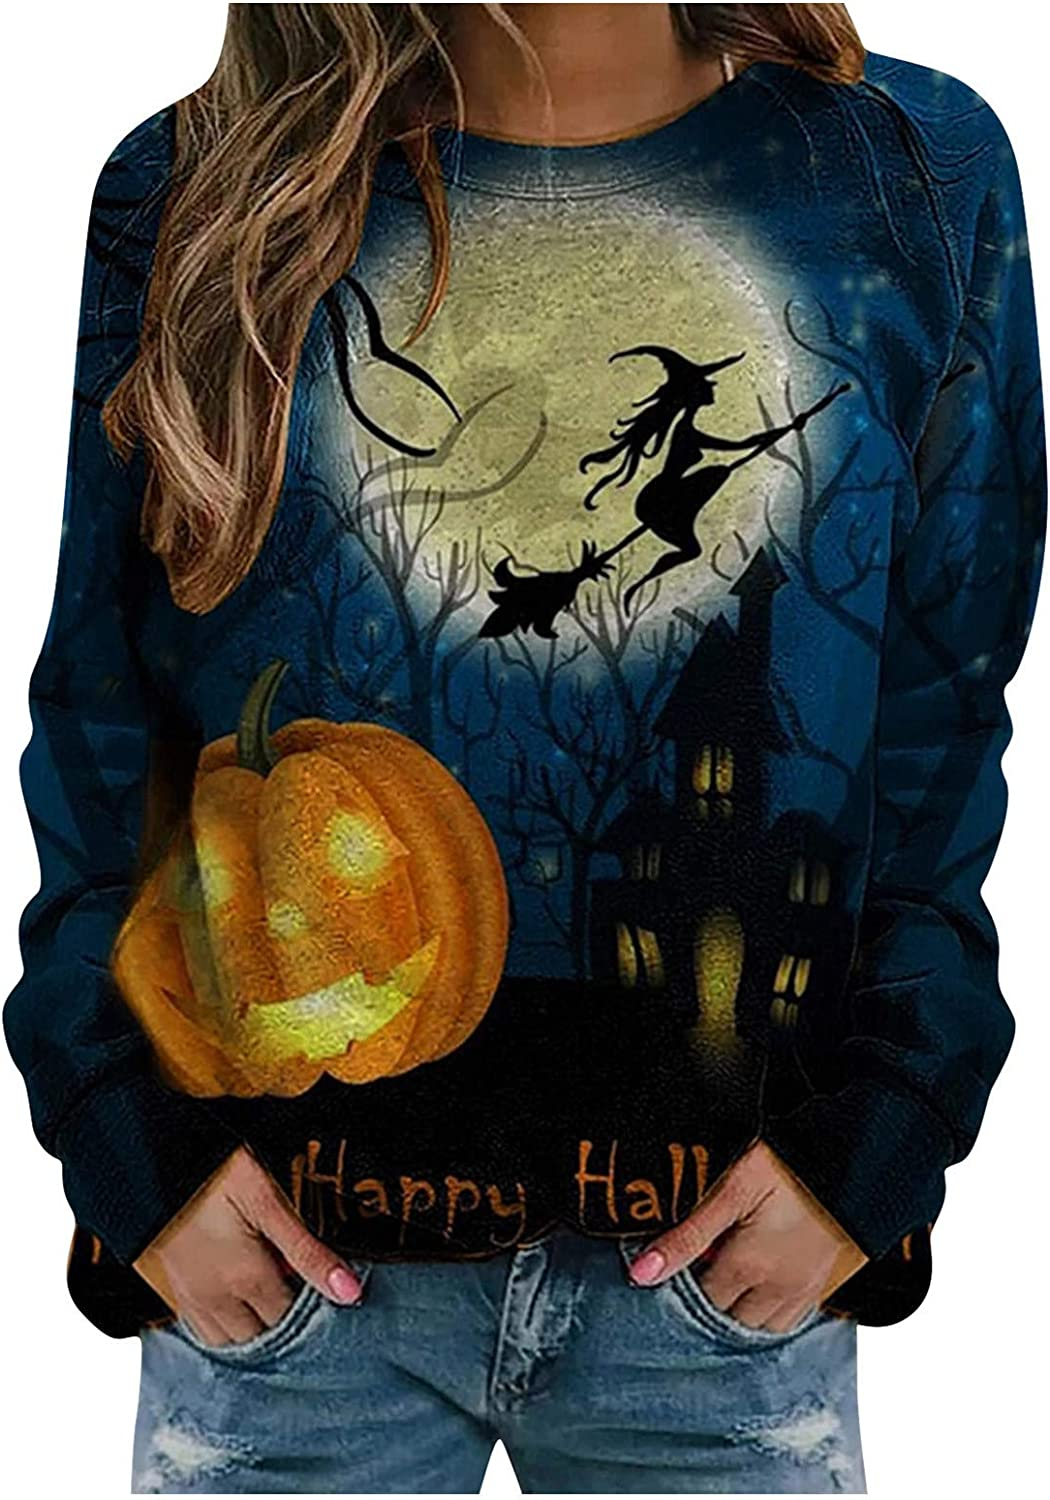 Pullover Sweaters for Women Halloween Christmas Sweatshirt Long Sleeve Casual Pullover Shirt Hoodies Tops Tunic